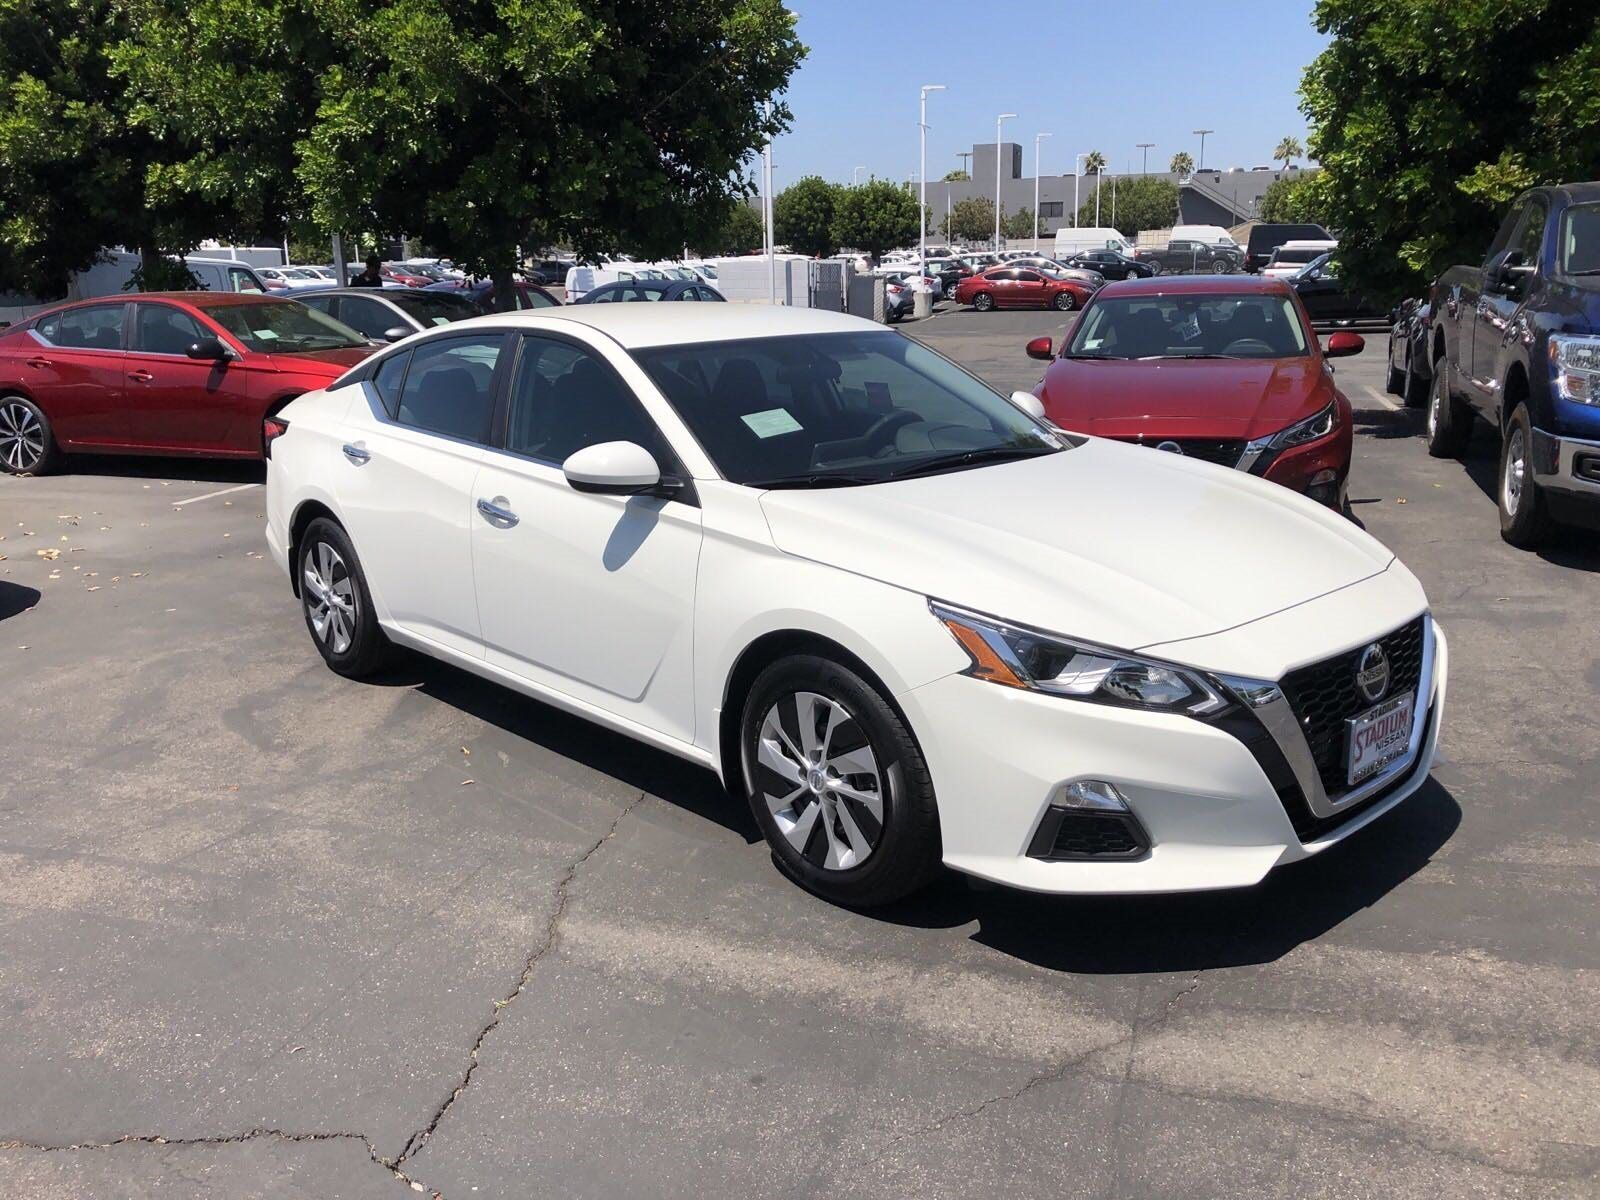 2020 Nissan Altima Coupe Photos In 2020 Nissan Sentra Nissan Altima Nissan Altima Coupe Rated 4.4 out of 5 stars. pinterest